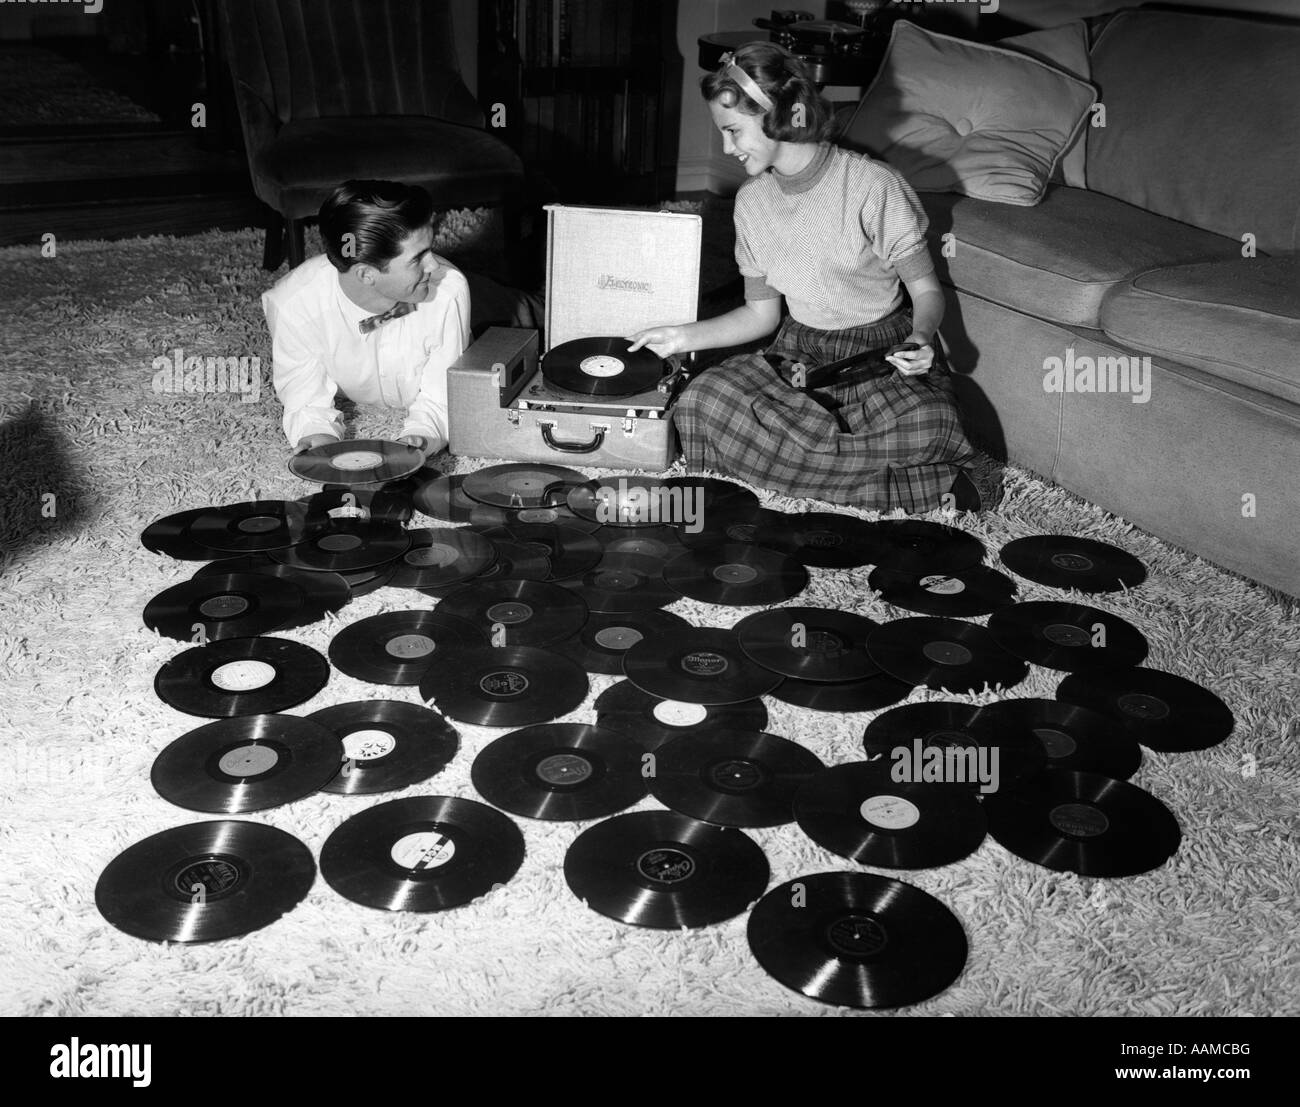 1950s TEENAGE COUPLE PLAYING MANY MUSIC RECORDS SPREAD OUT ON LIVING ROOM FLOOR - Stock Image